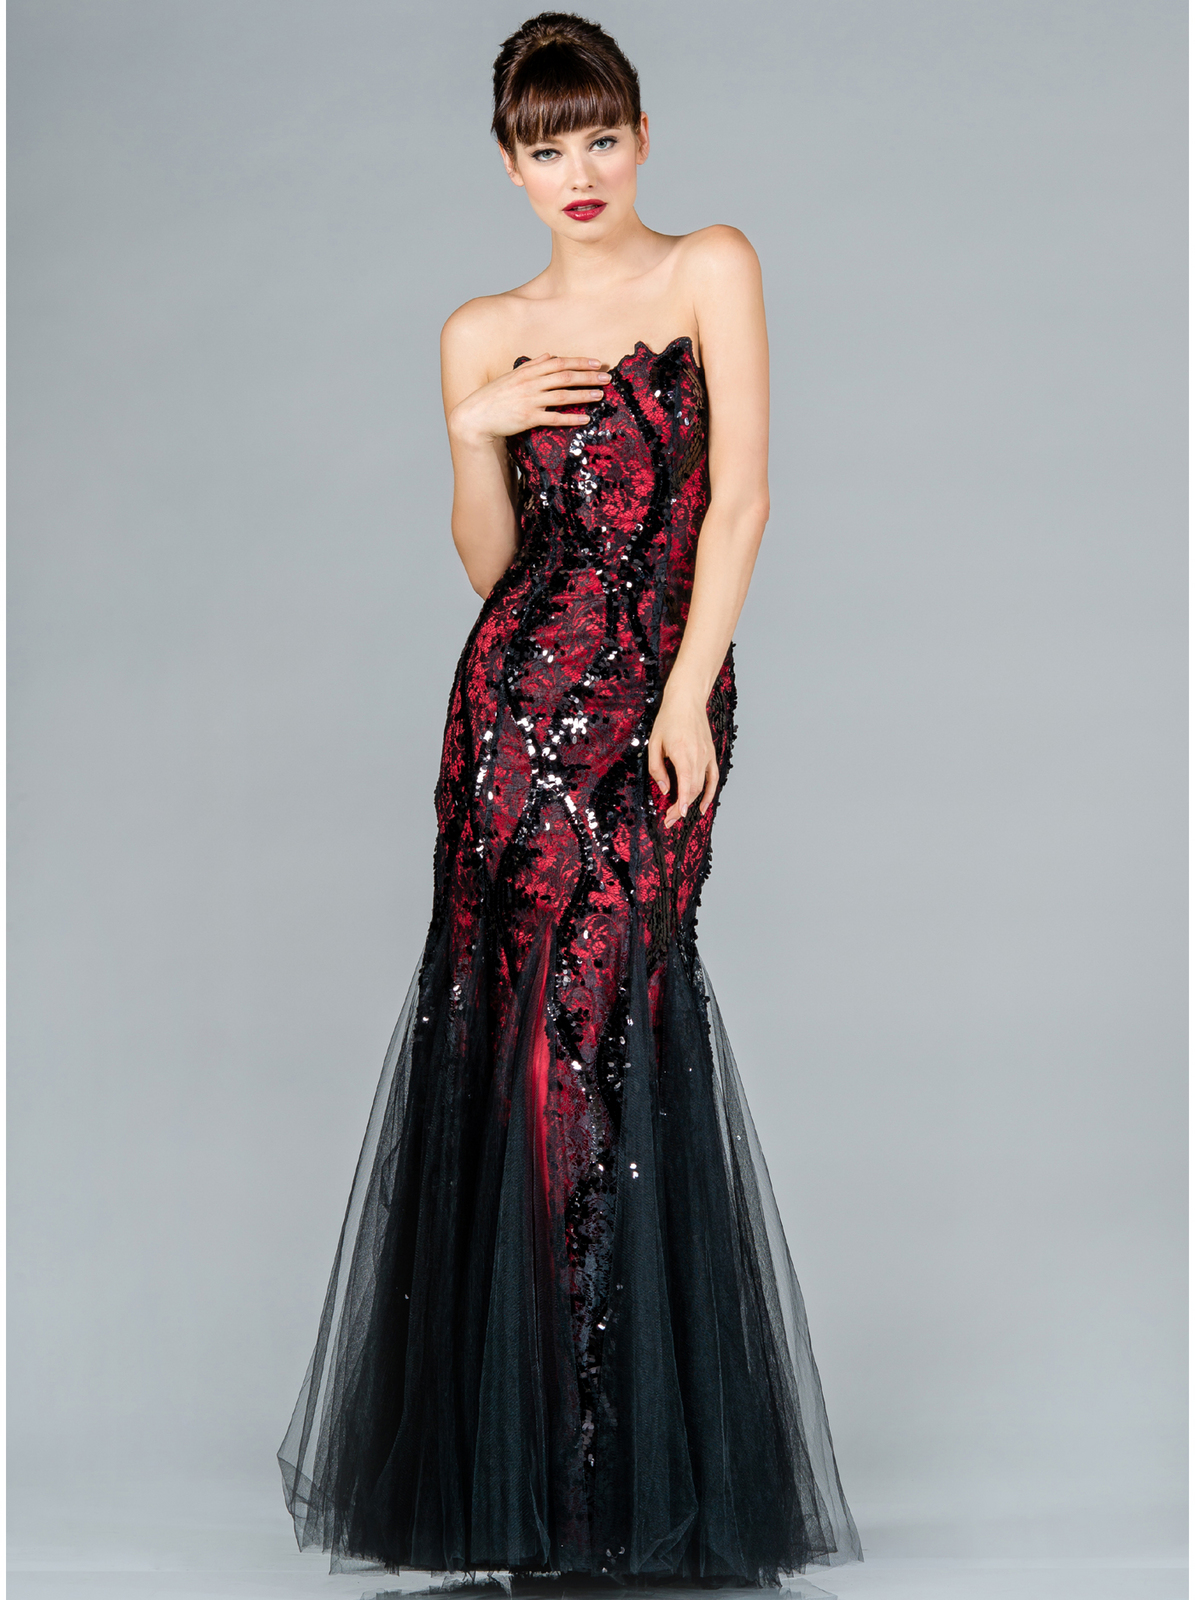 laest technology laest technology best prices Black and Red Lace Prom Dress | Sung Boutique L.A.